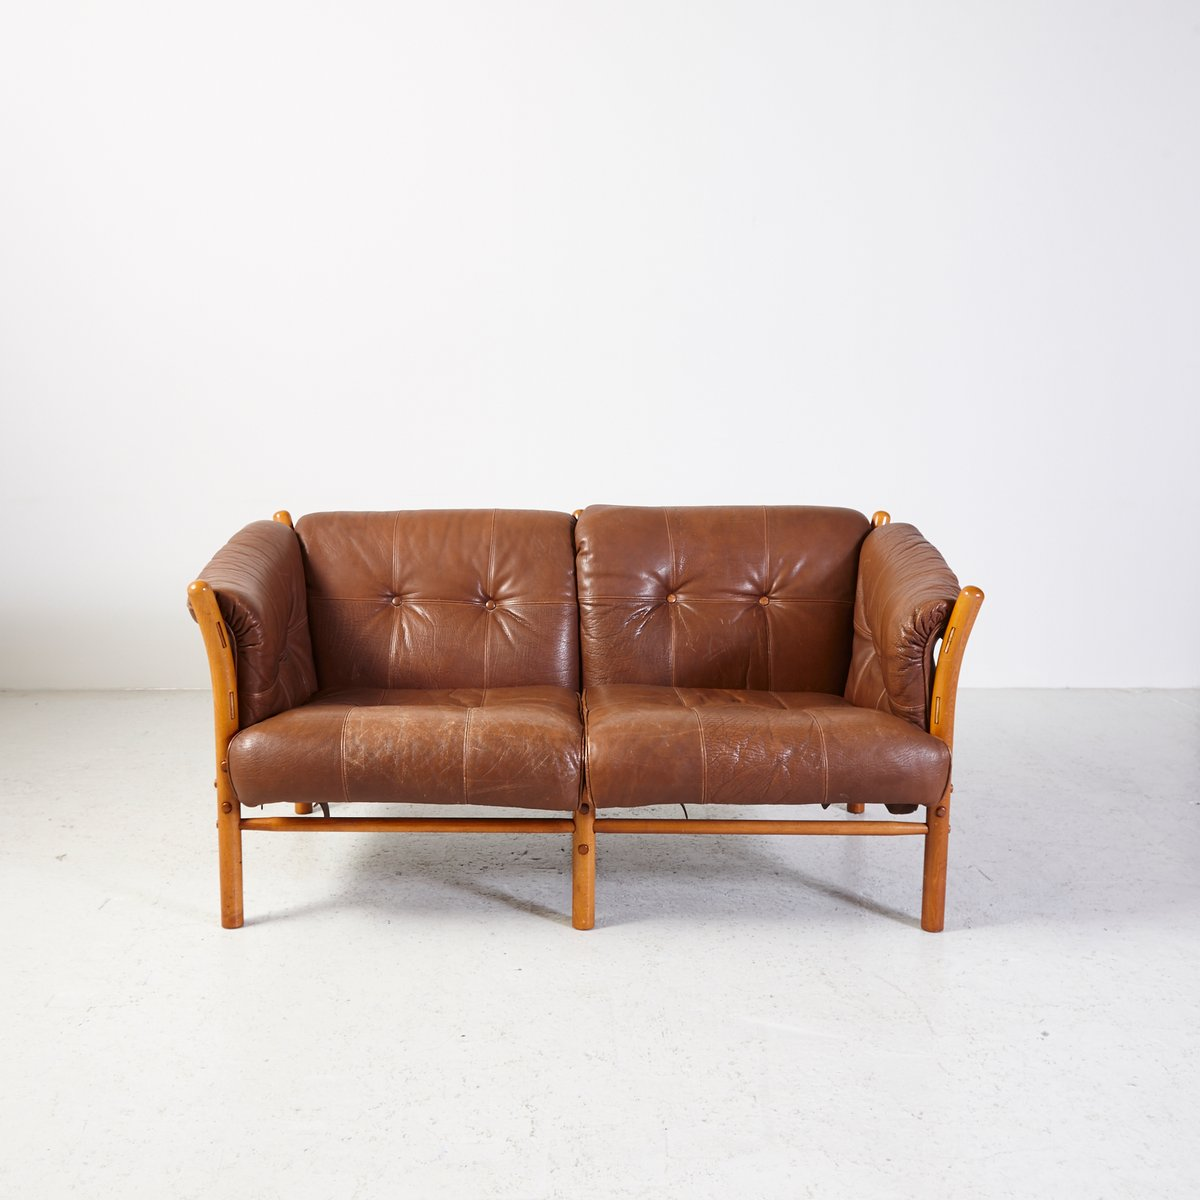 Vintage Ilona Armchair And Sofa By Arne Norell For Sale At Pamono